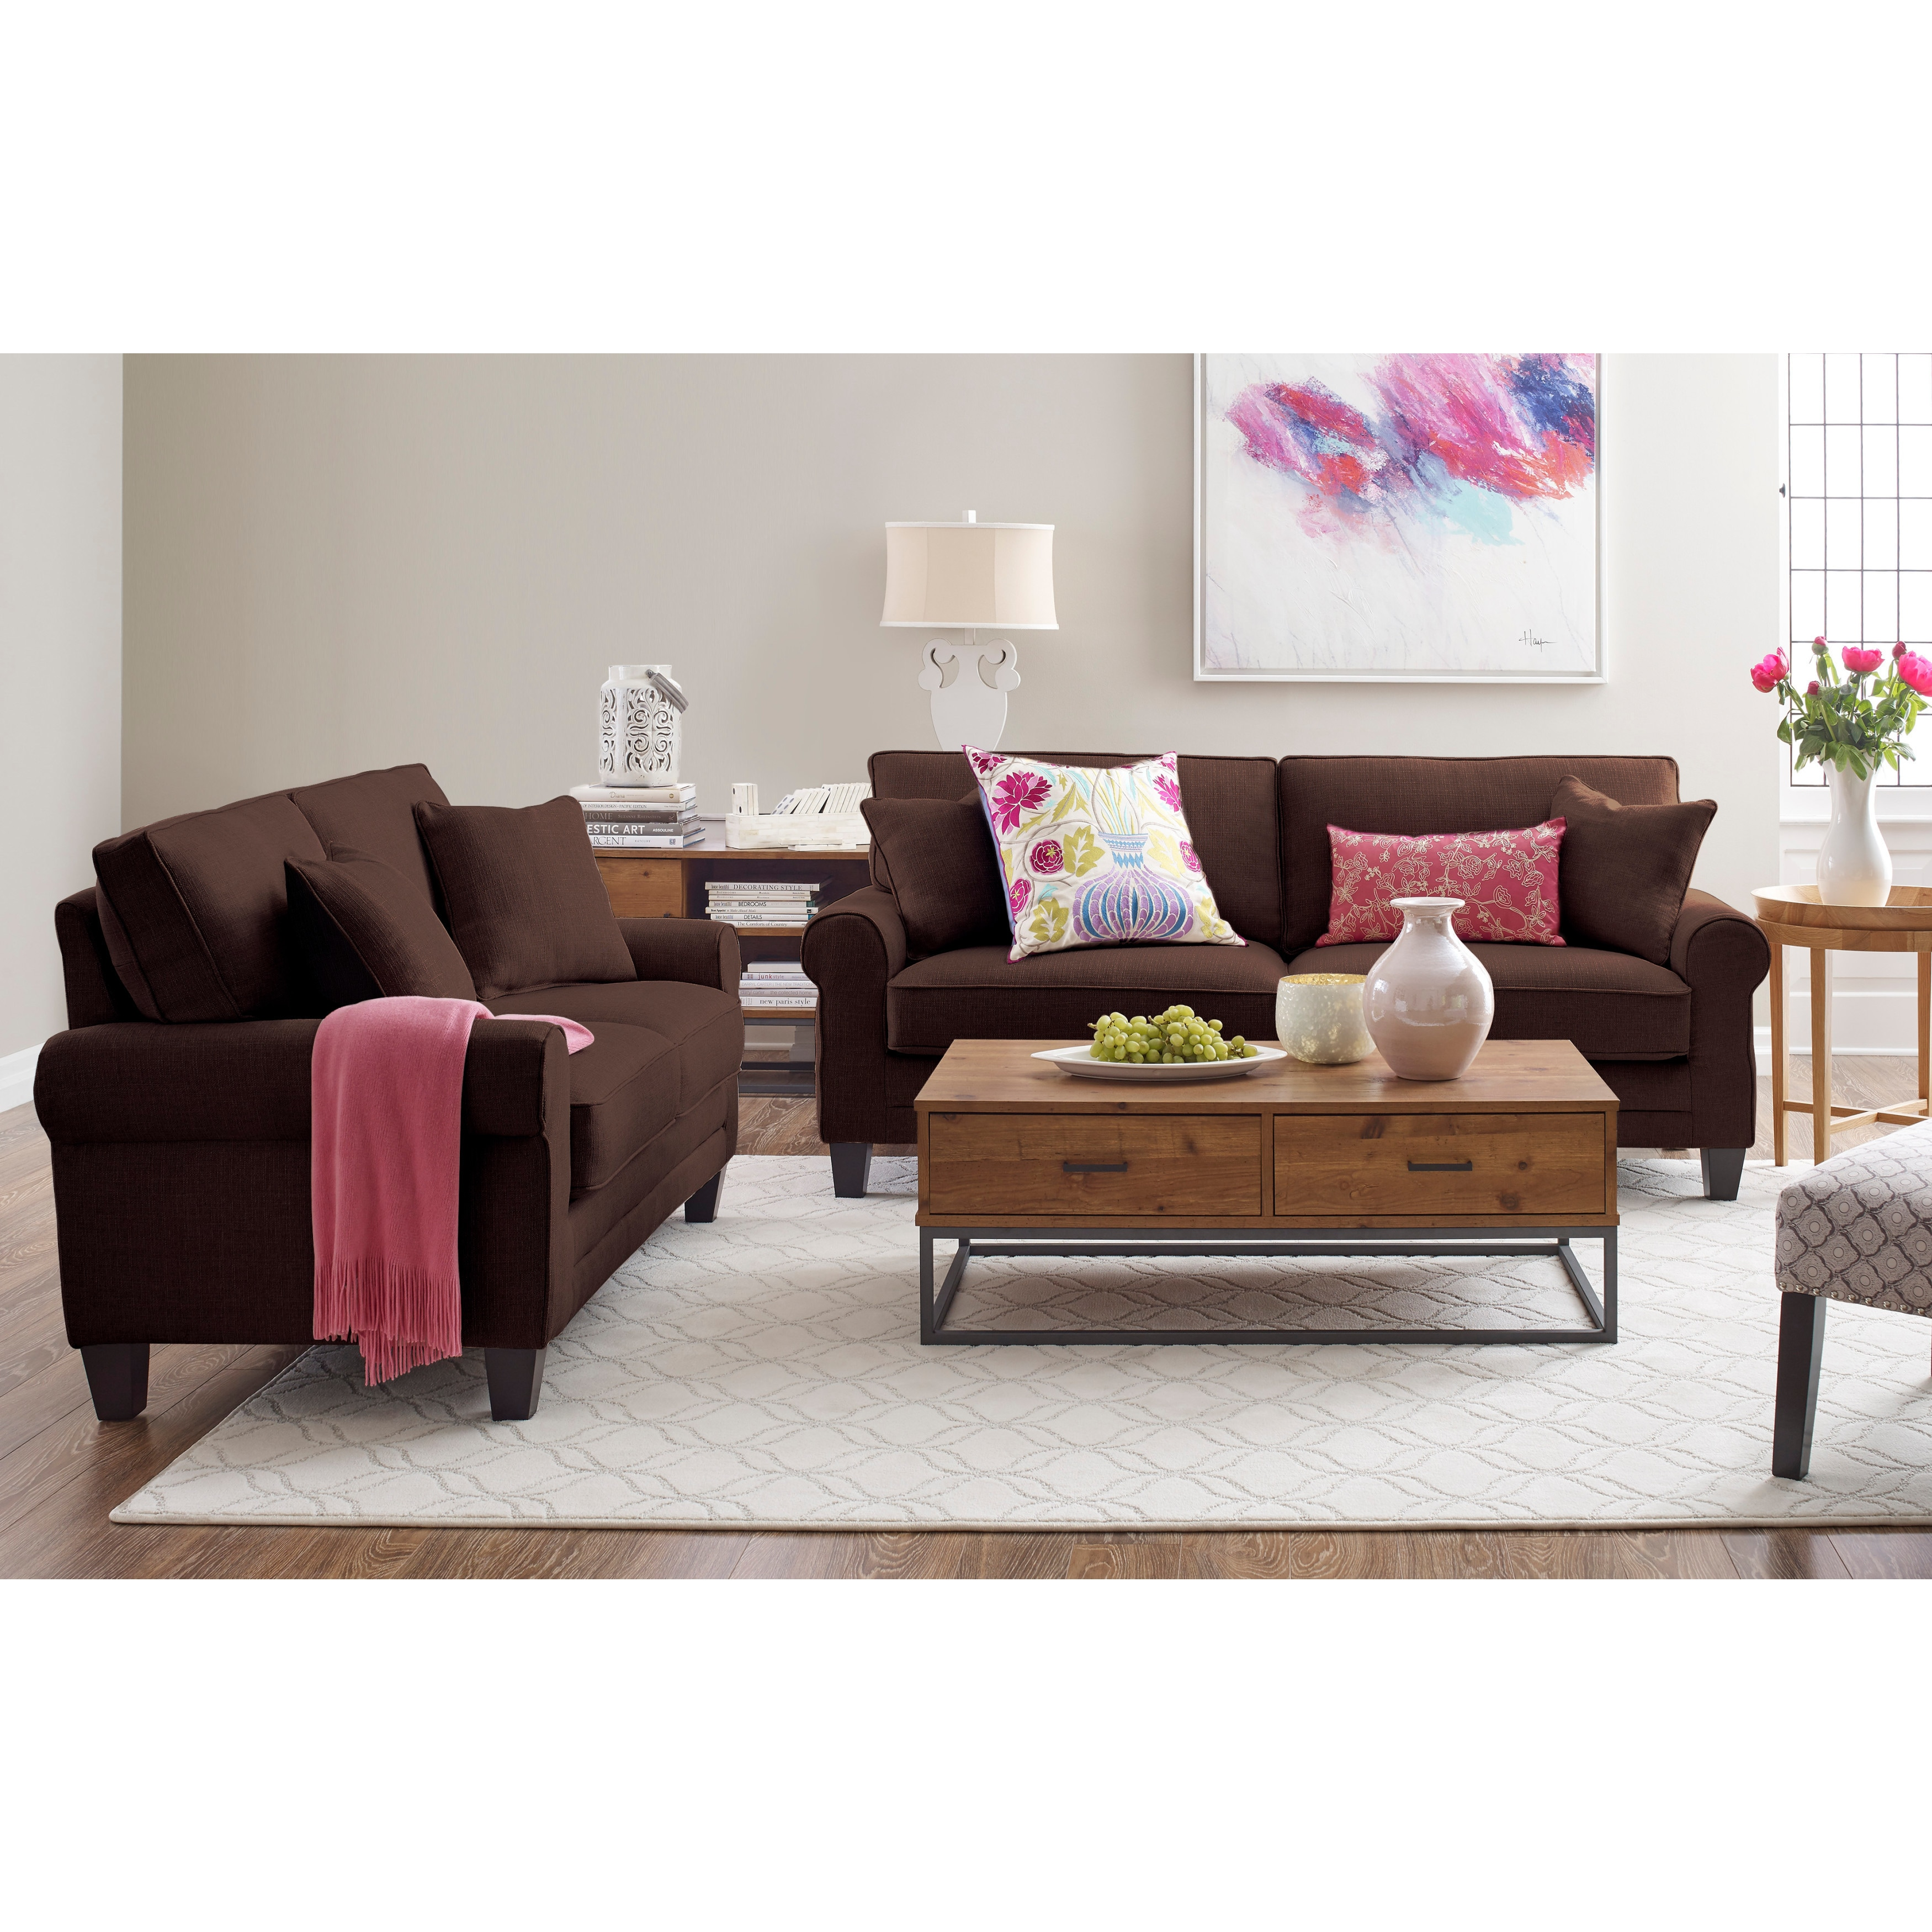 at serta collection home hayneedle couch fabric sofa product palisades cfm chestnutbrown in martinique options